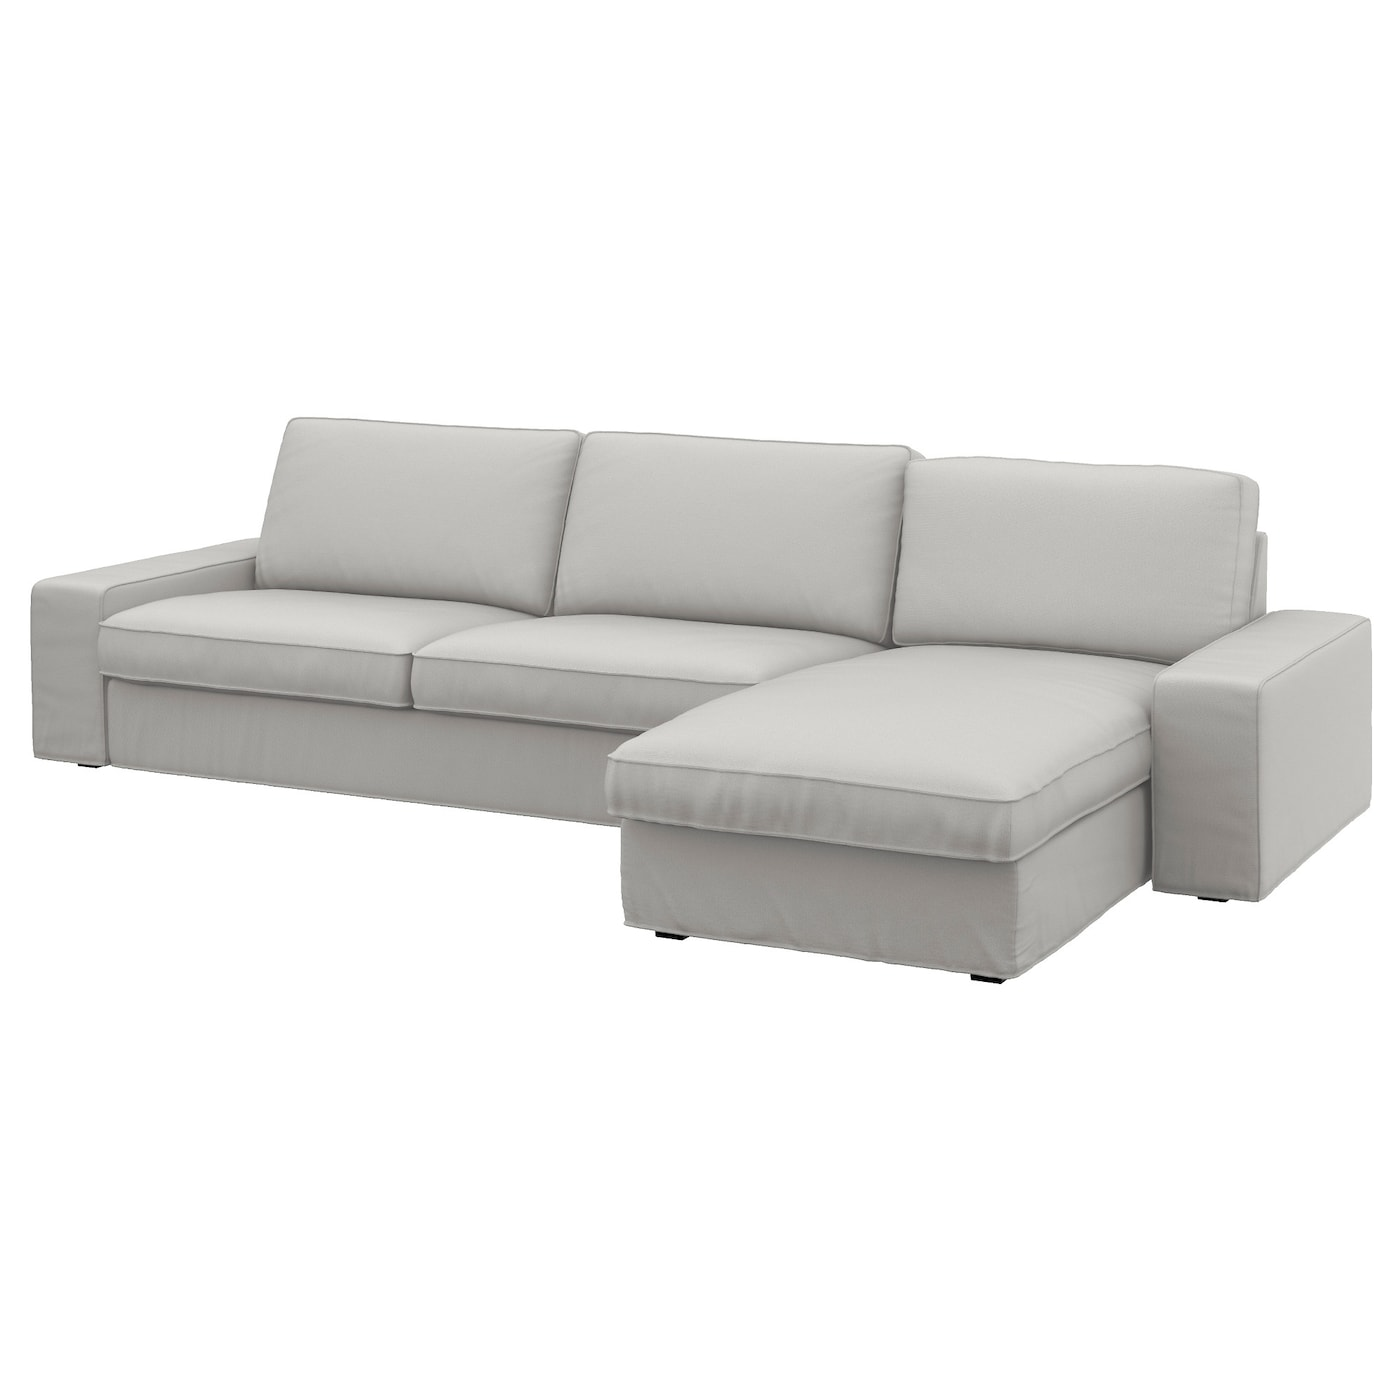 Kivik 4 seat sofa with chaise longue ramna light grey ikea for Ikea sofa set